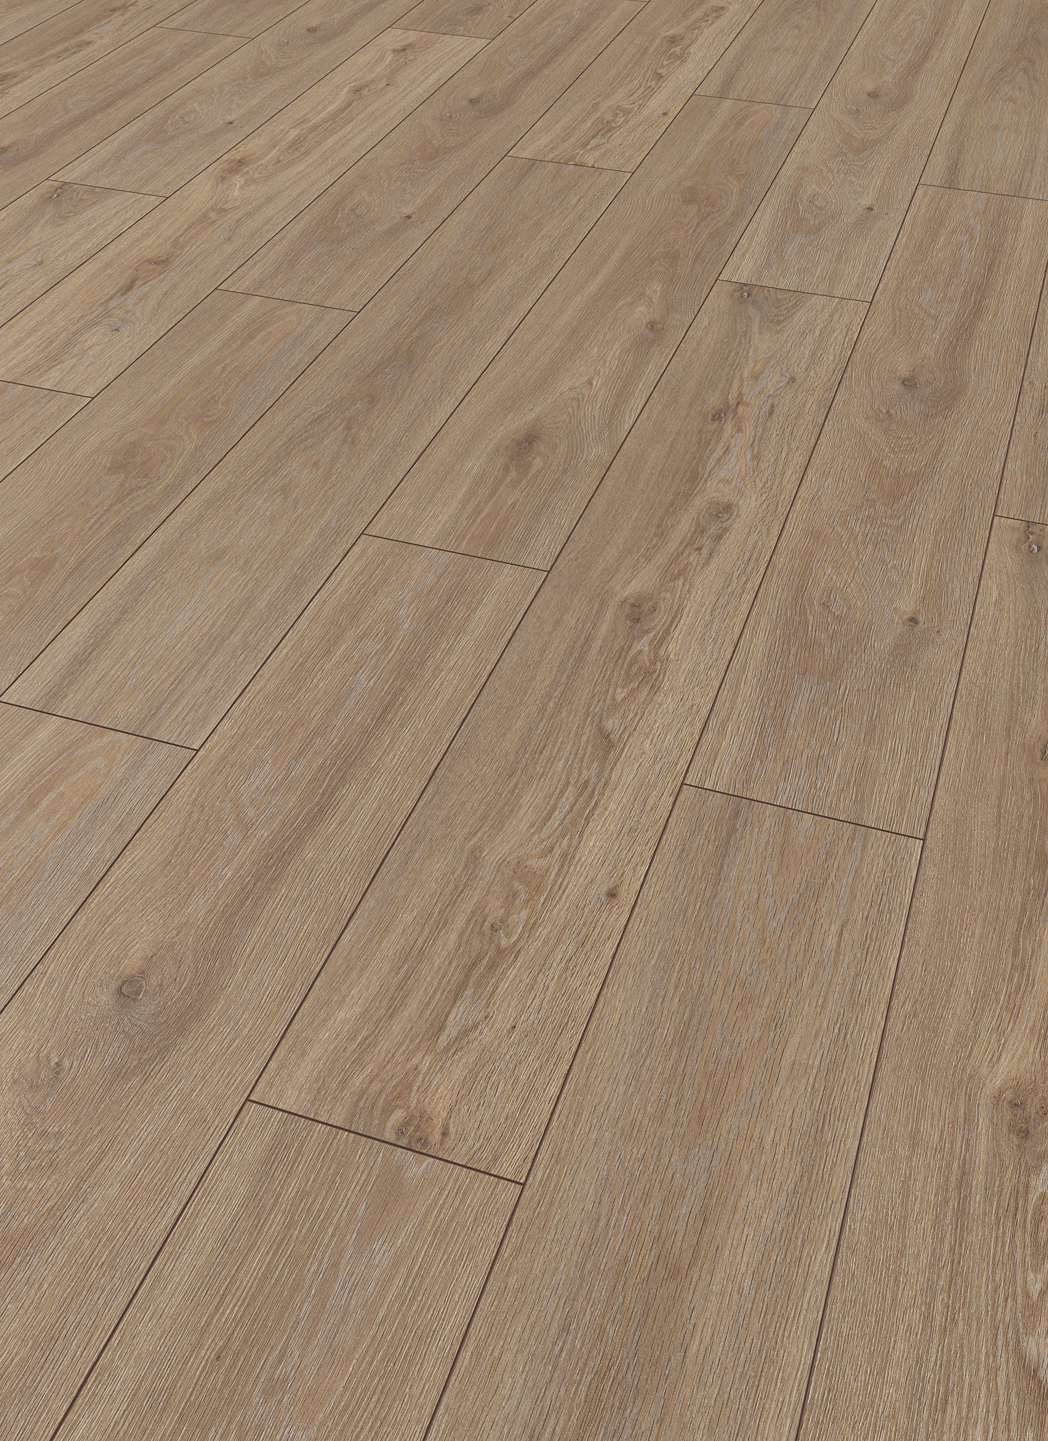 Avatara Oak Grey Brown Man Made Wood Floor Wood4floors